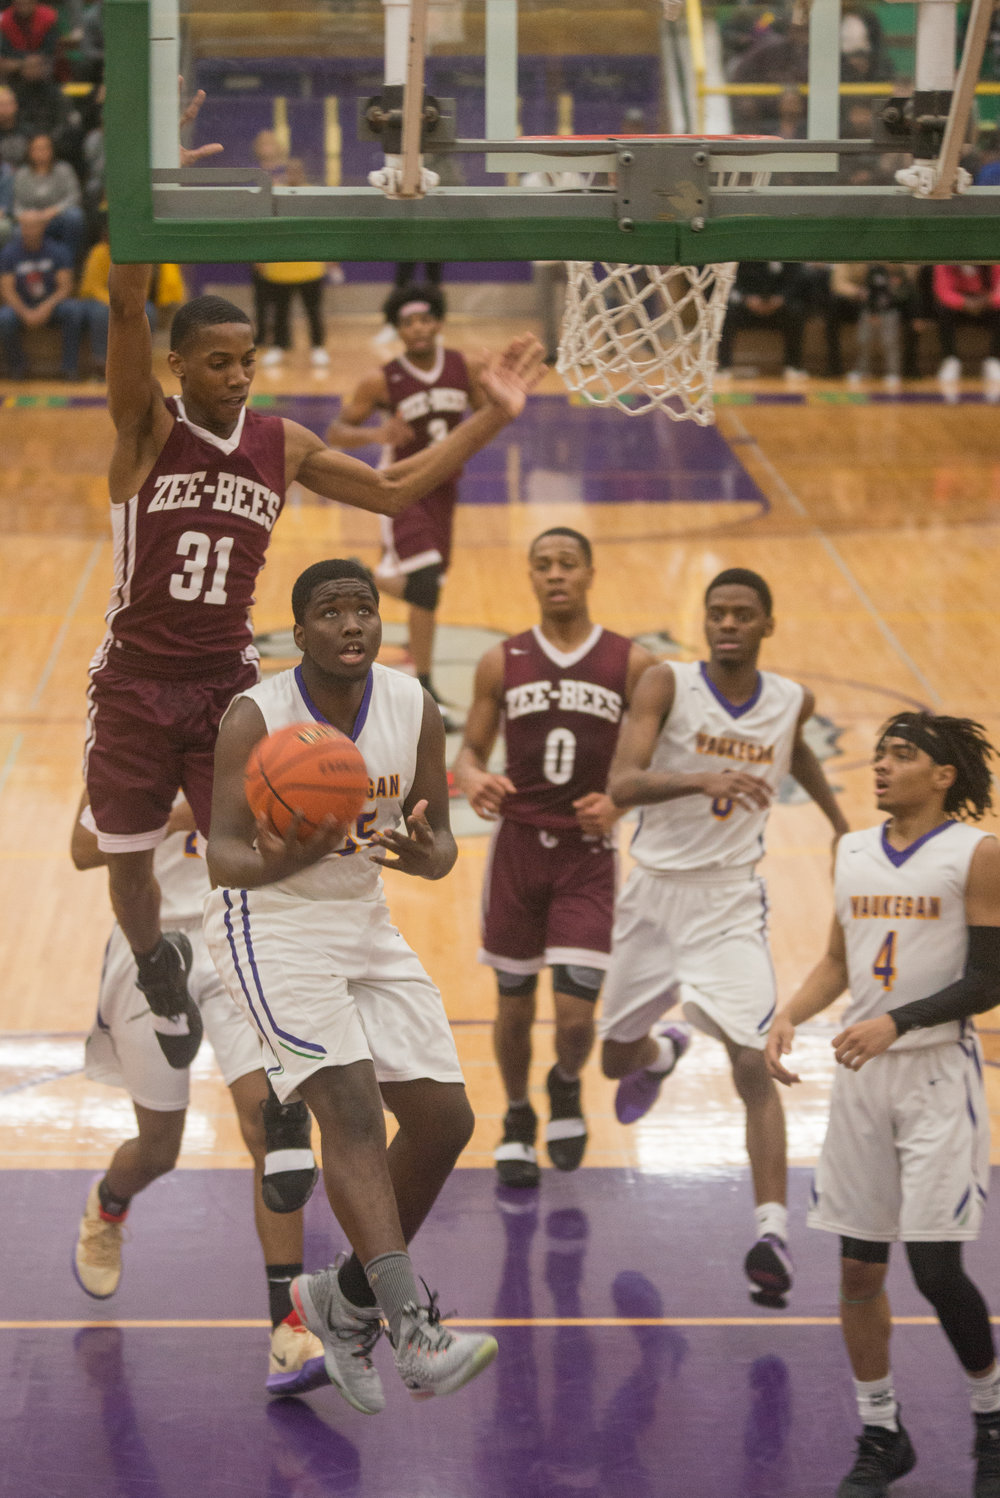 34-Kavon-Colder-puts-up-a-shot-vs-Zion-Benton.jpg